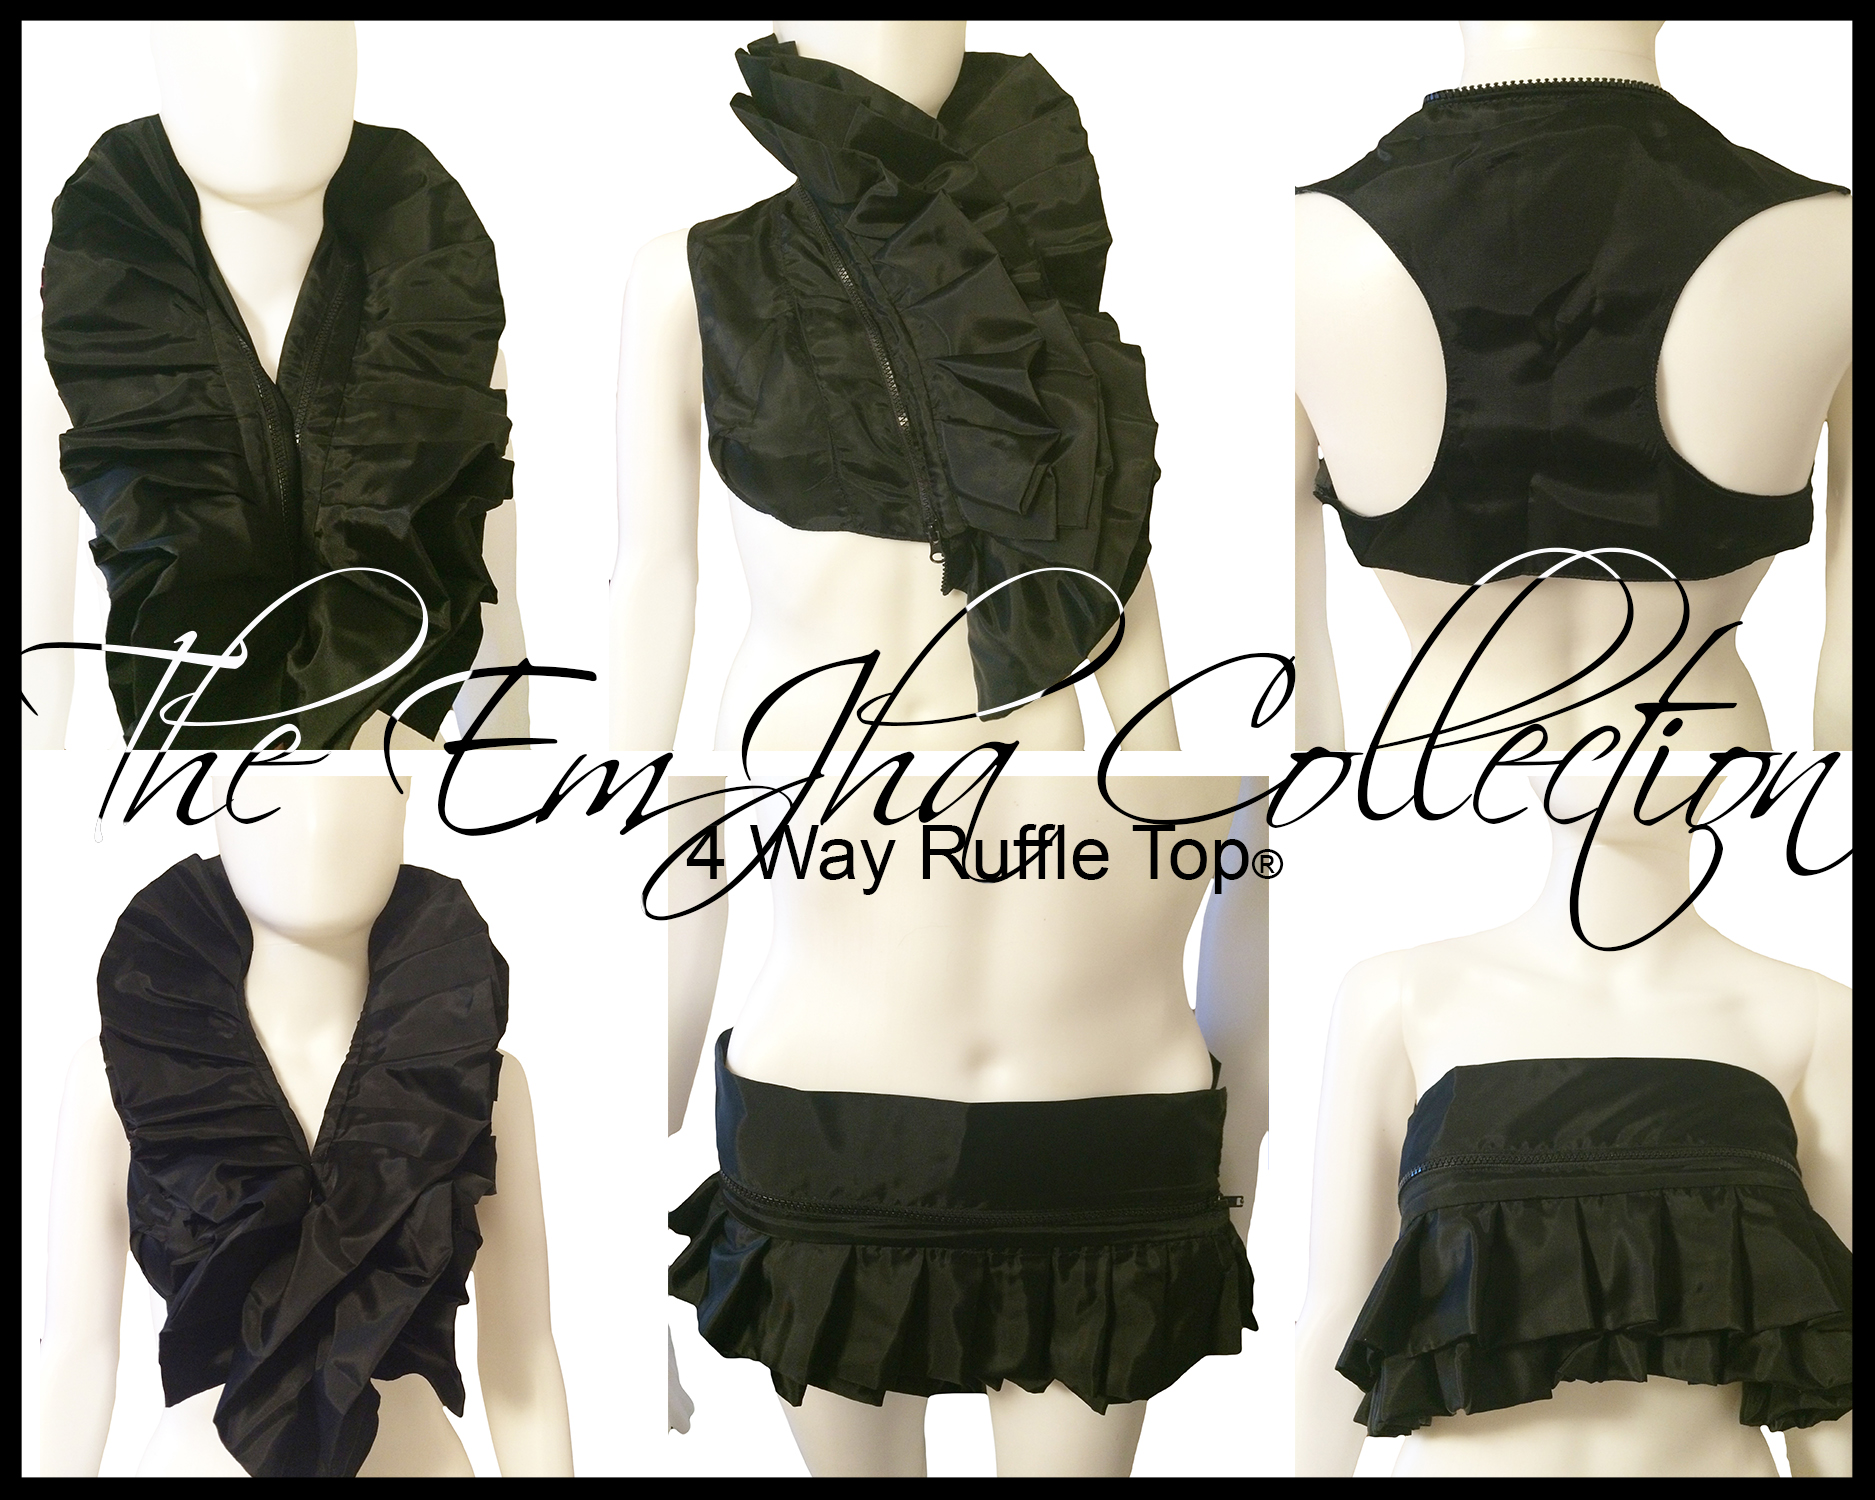 The EmJha Collection 4 Way Ruffle Top